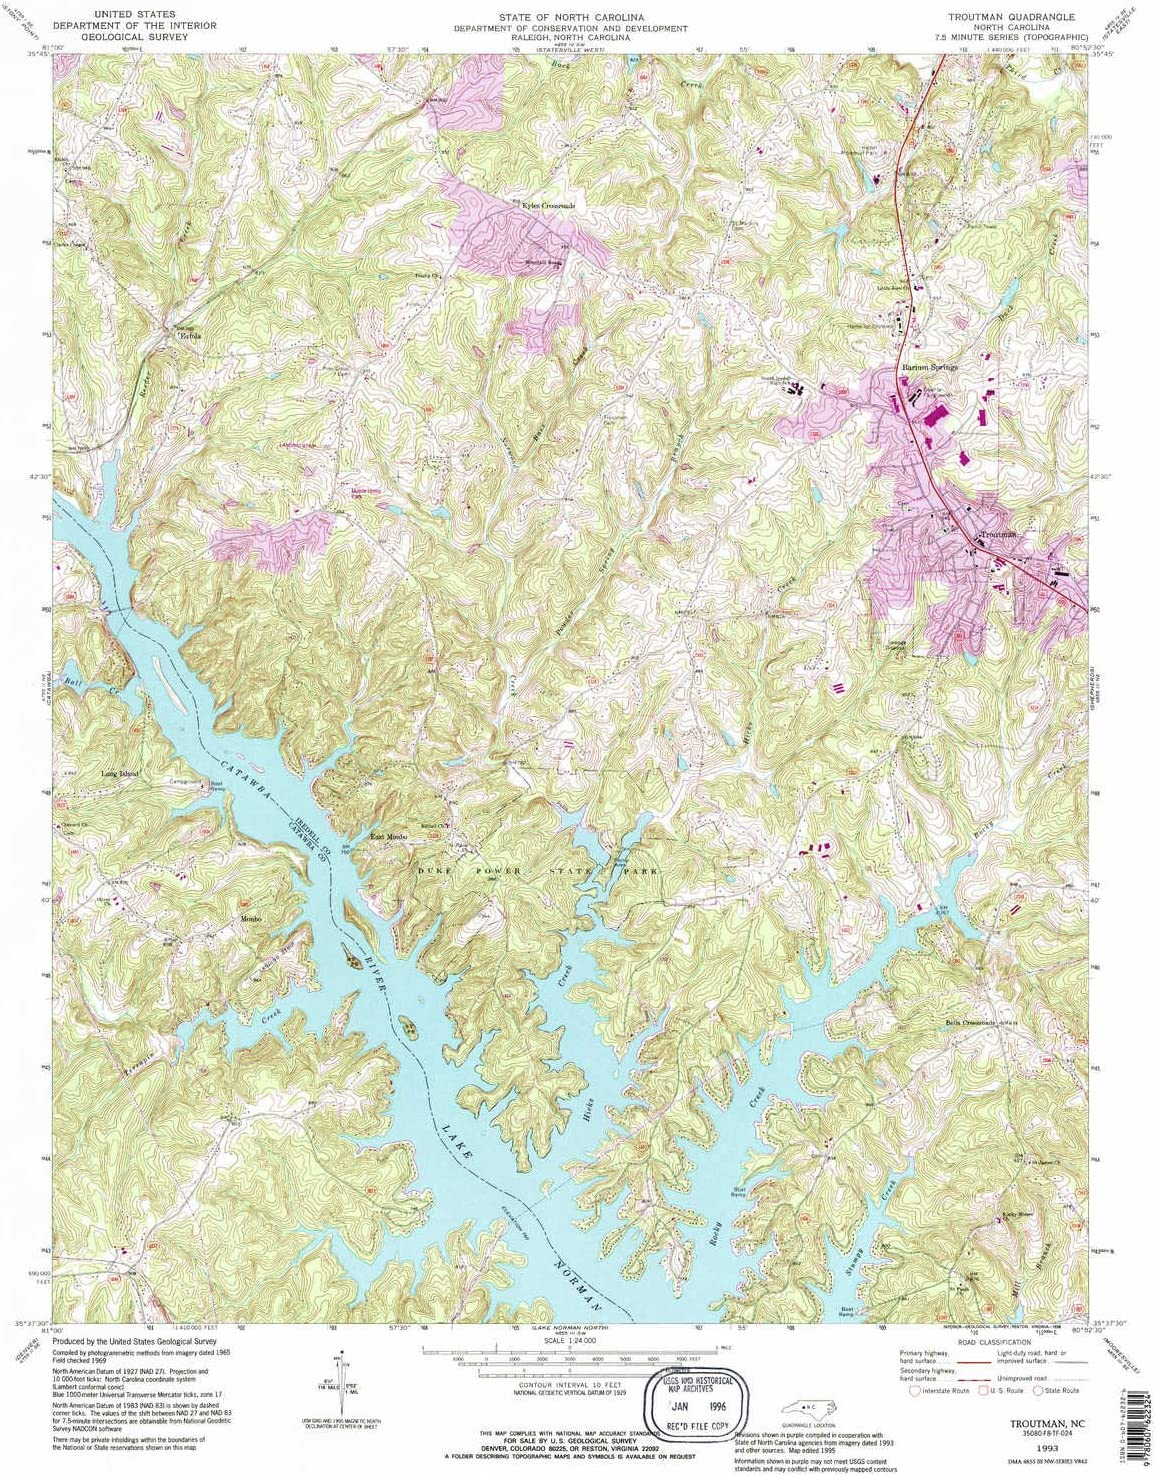 YellowMaps Luxury Troutman NC topo map 7.5 Scale X Selling and selling Minute 1:24000